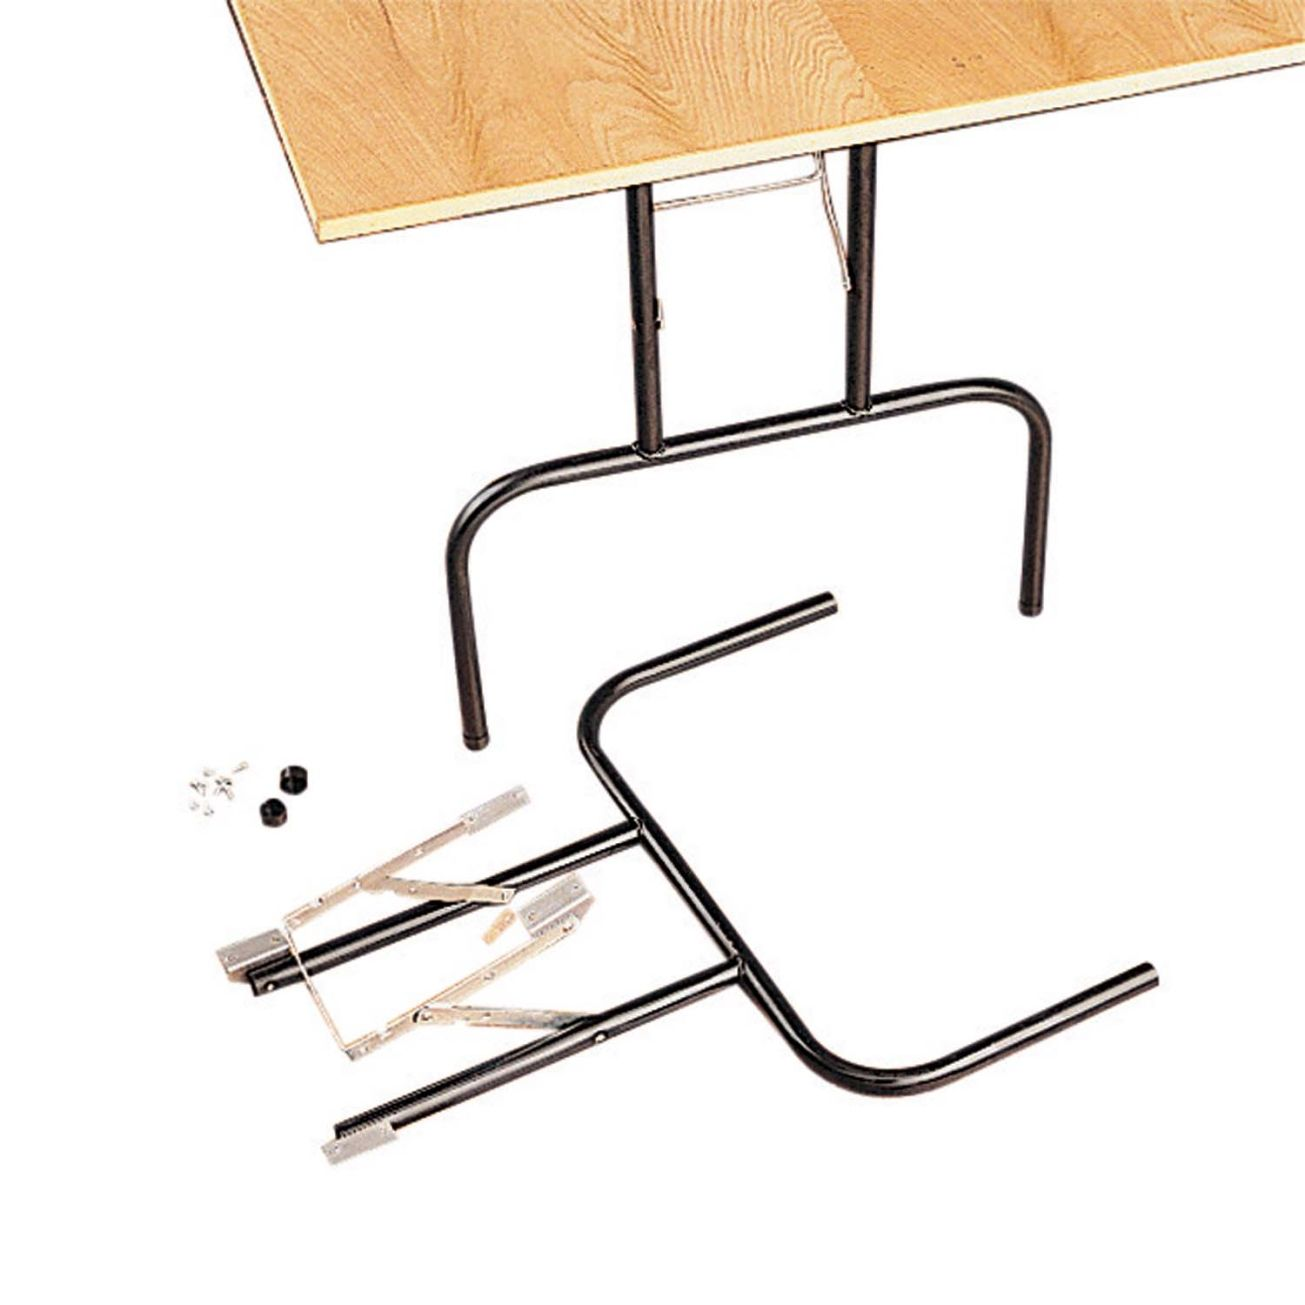 Waddell 29 In H Folding Metal Table Leg Table Legs Metal Table Legs Folding Table Legs